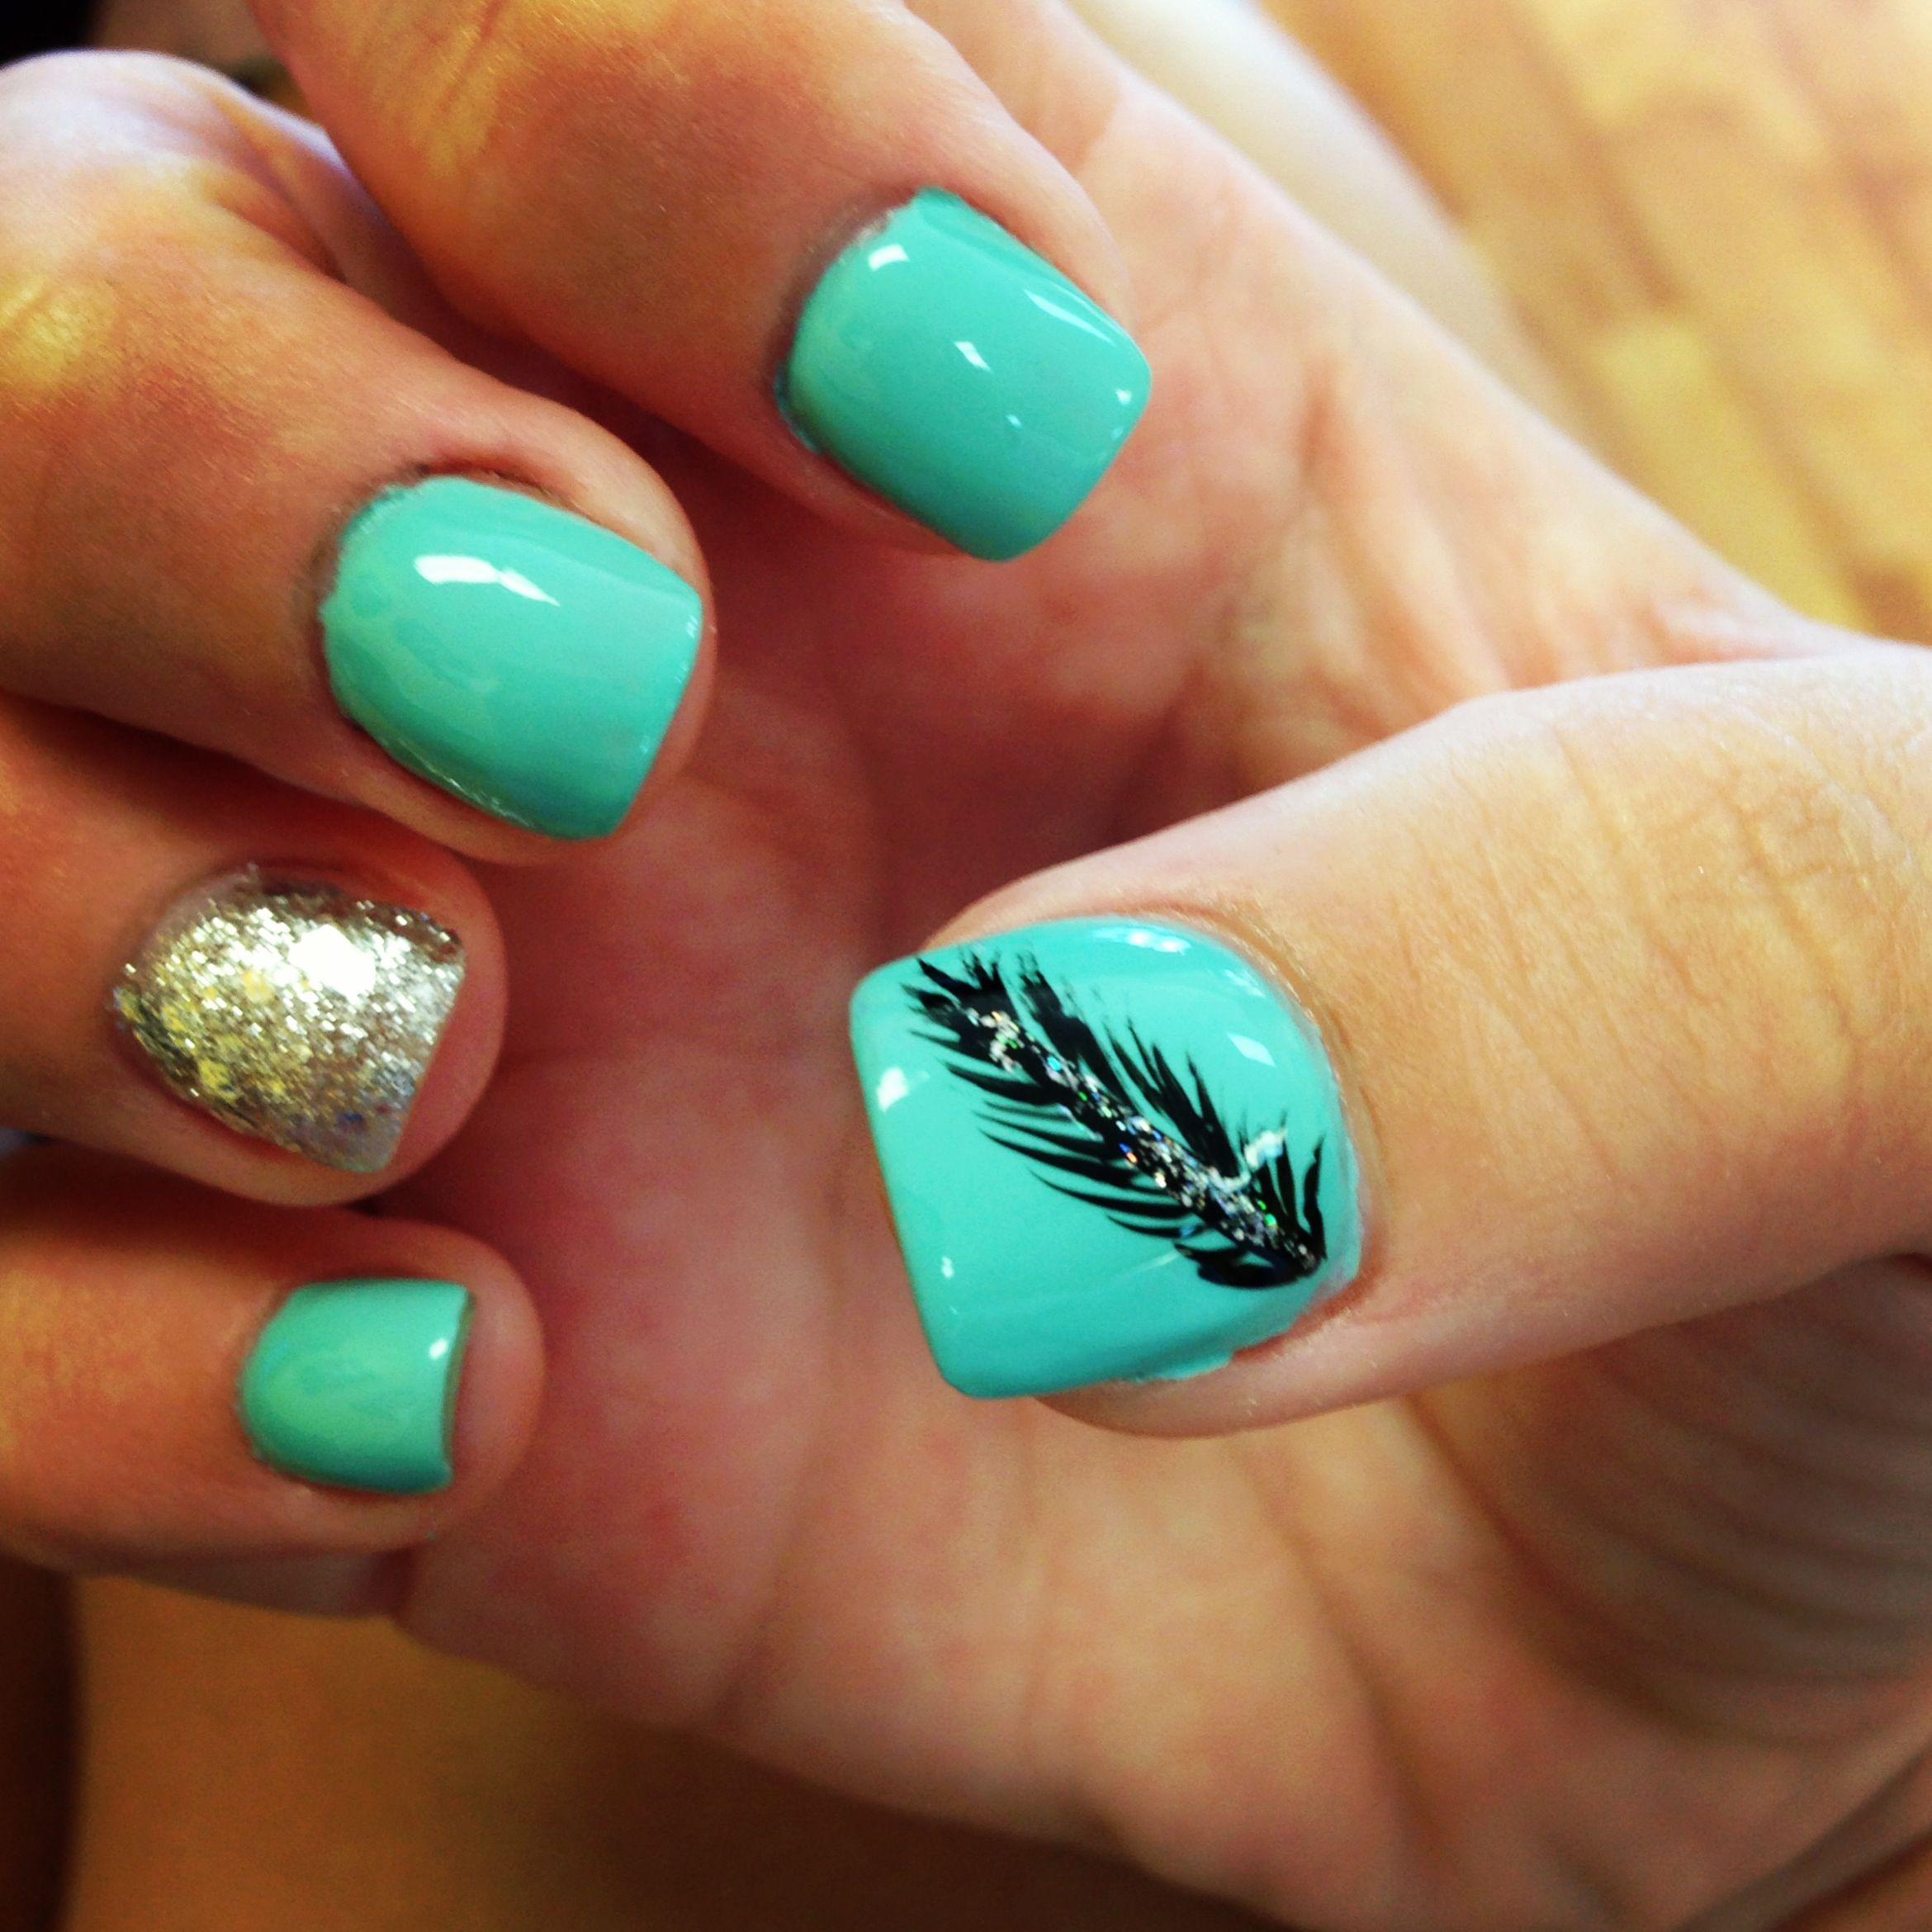 Feather nails | nails (: | Pinterest | Feather nails, Feathers and ...